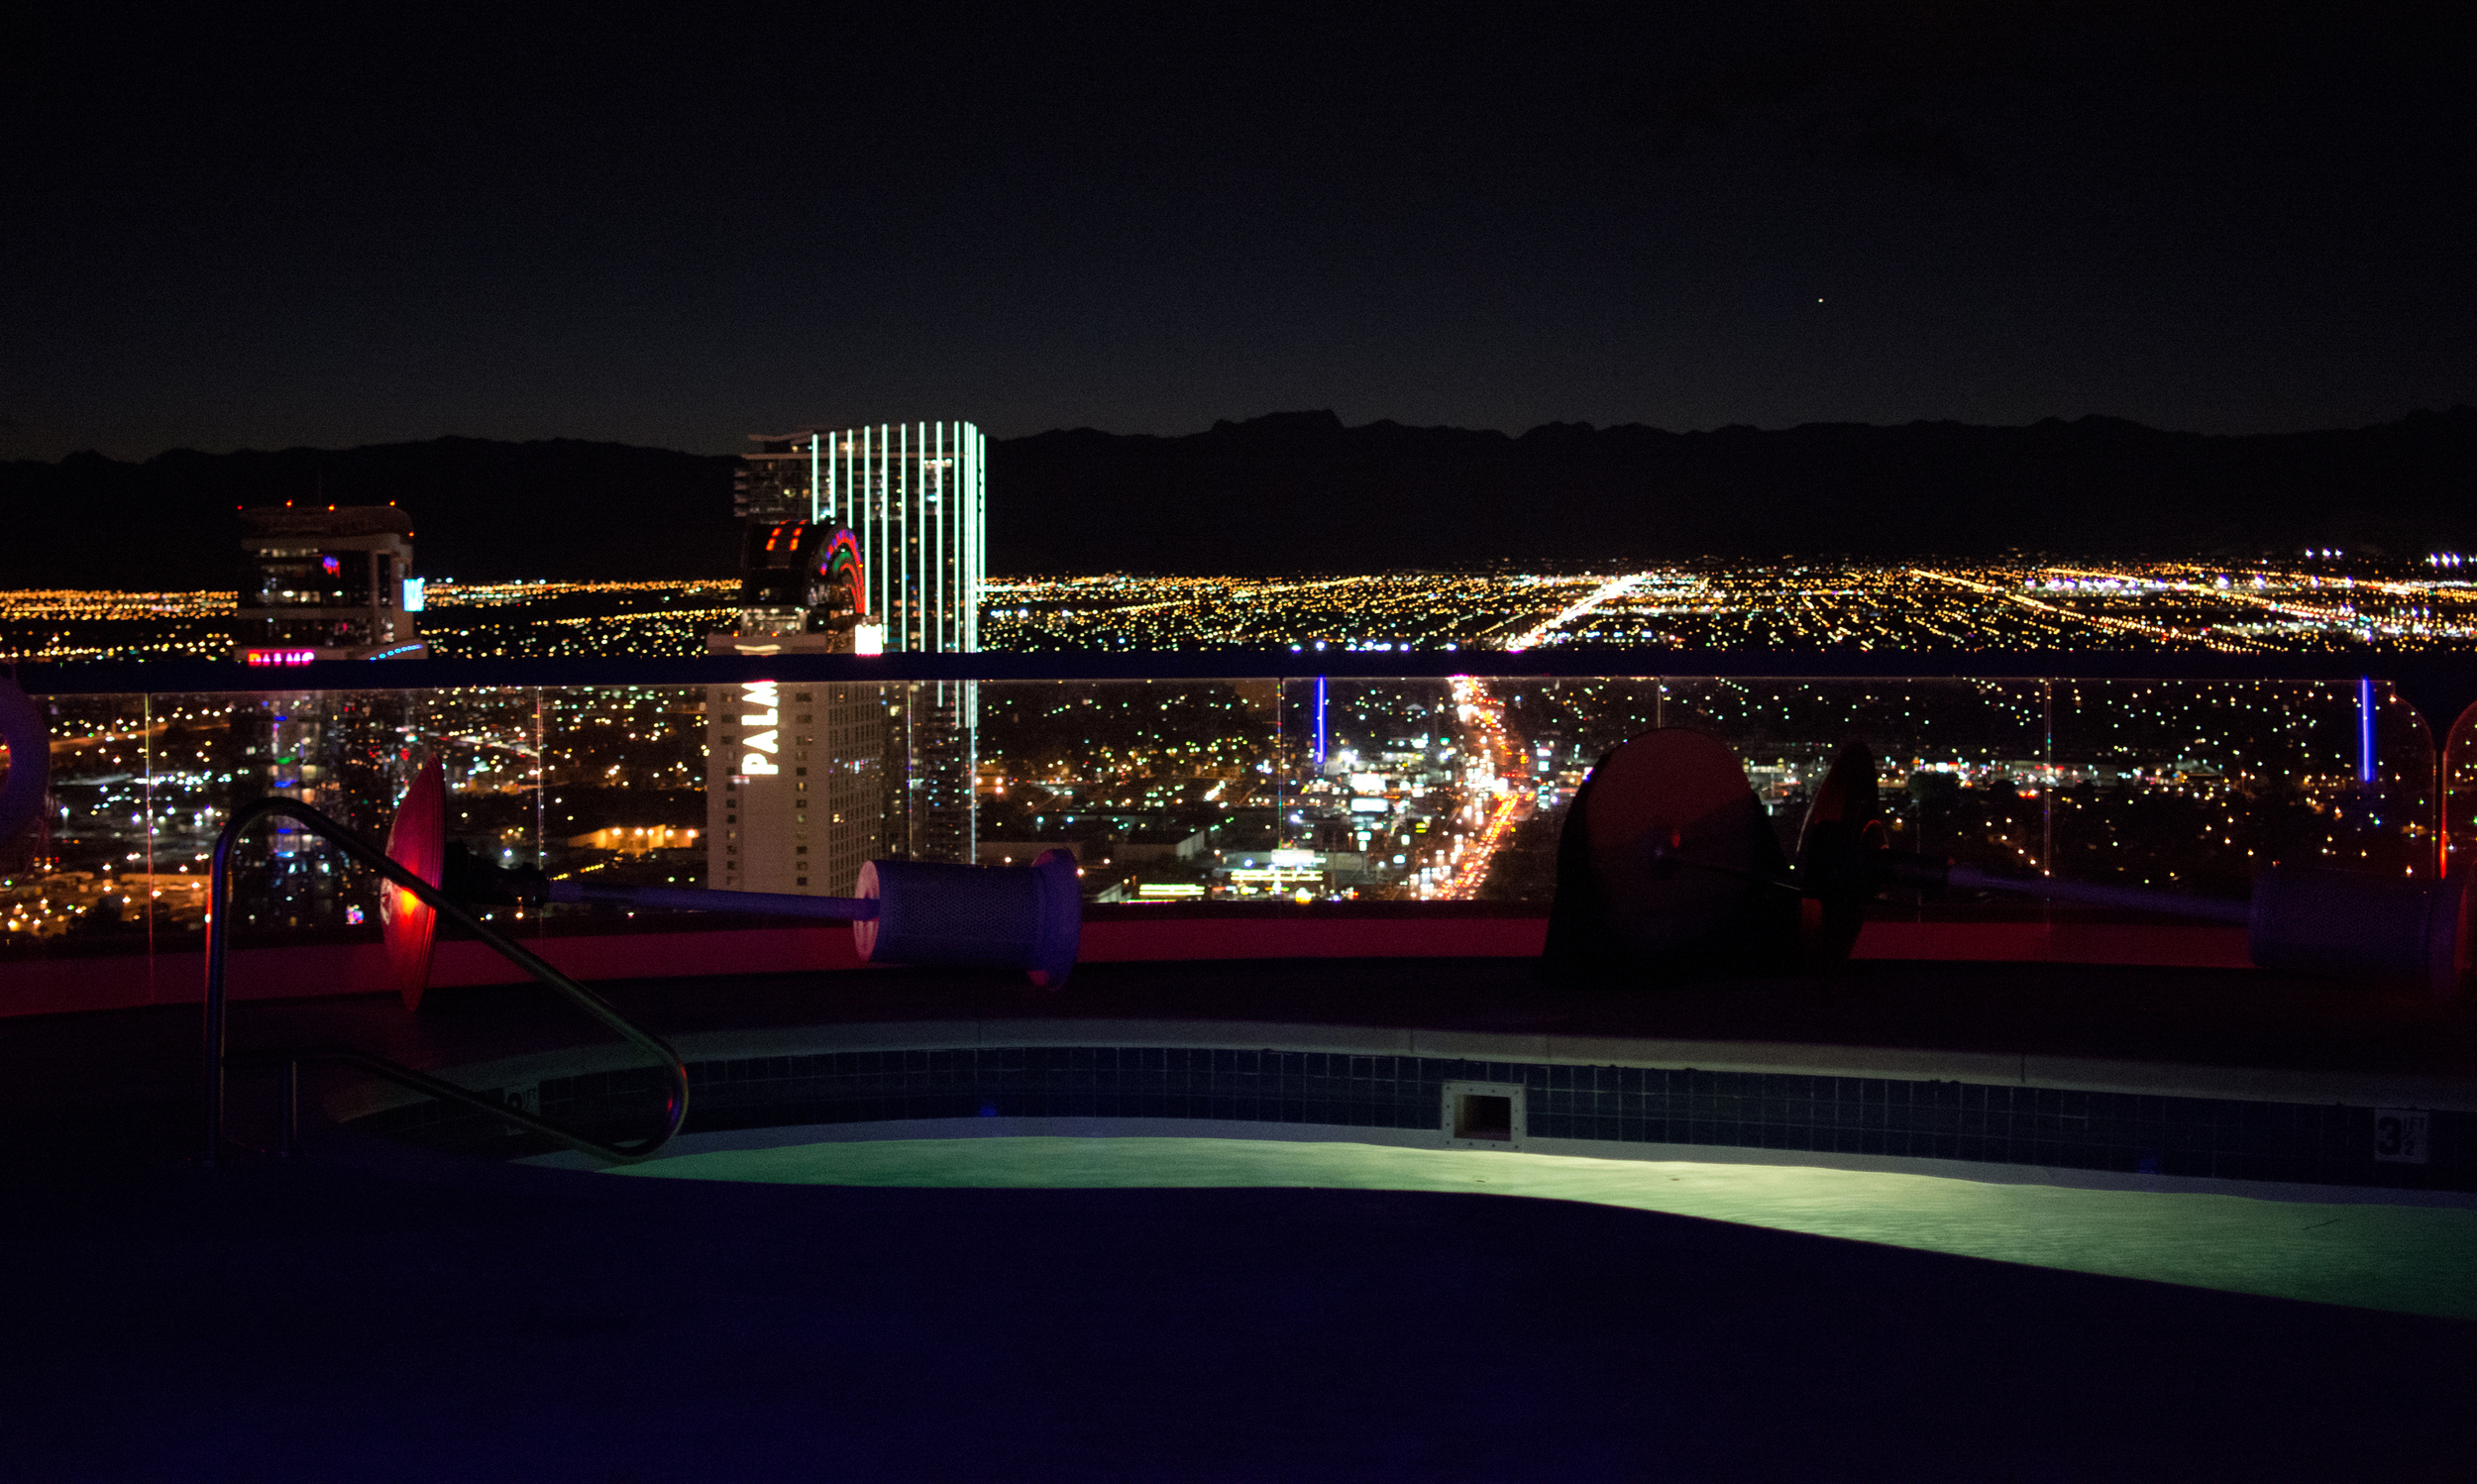 View from the rooftop patio in the Presidential Suite on the 51st floor of the  Rio Hotel